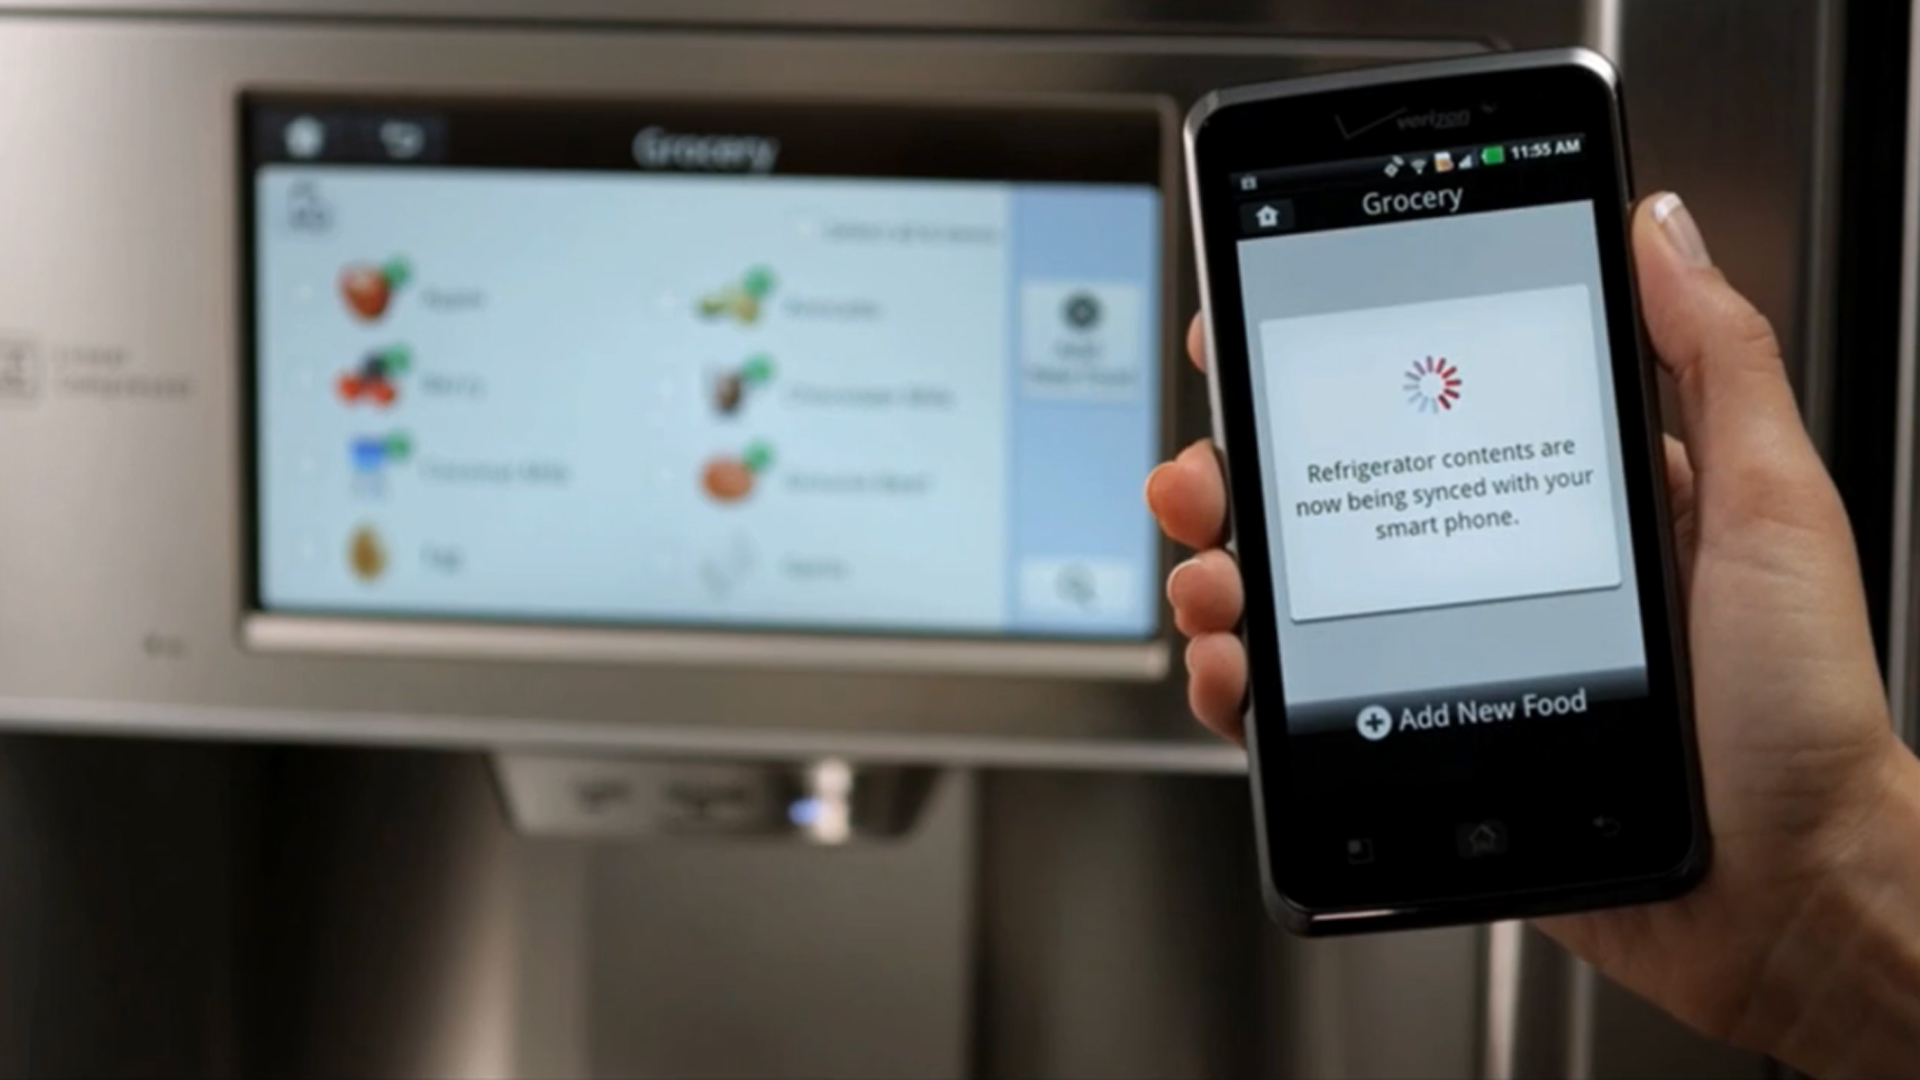 Smart Refrigerator - Internet of Things. Image Courtesy: Mashable.